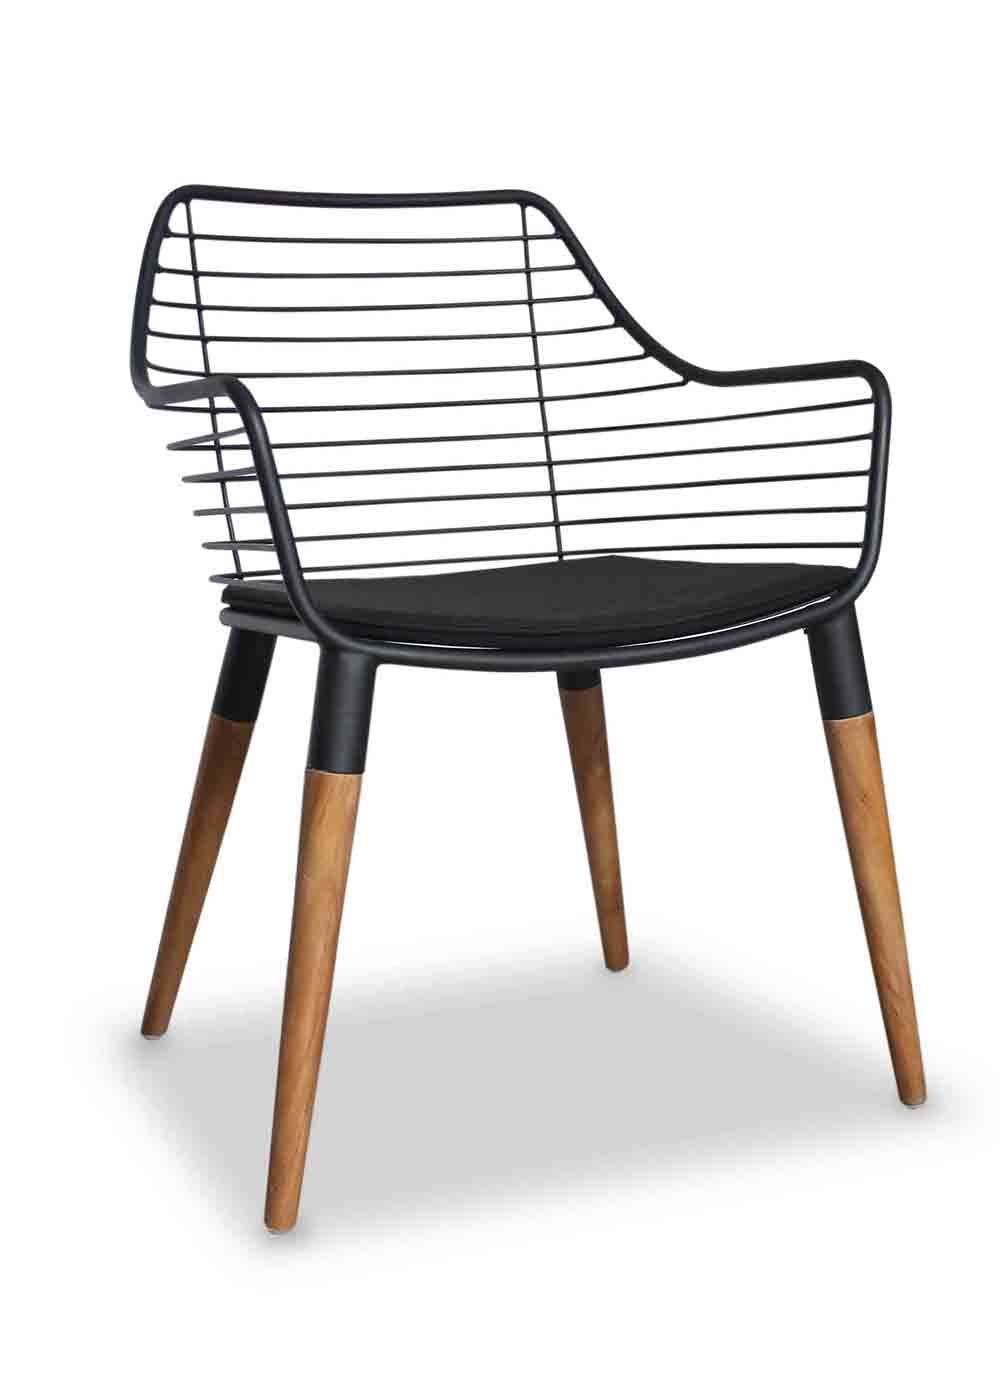 Picture Of The Emerson Arm Chair (View 16 of 25)